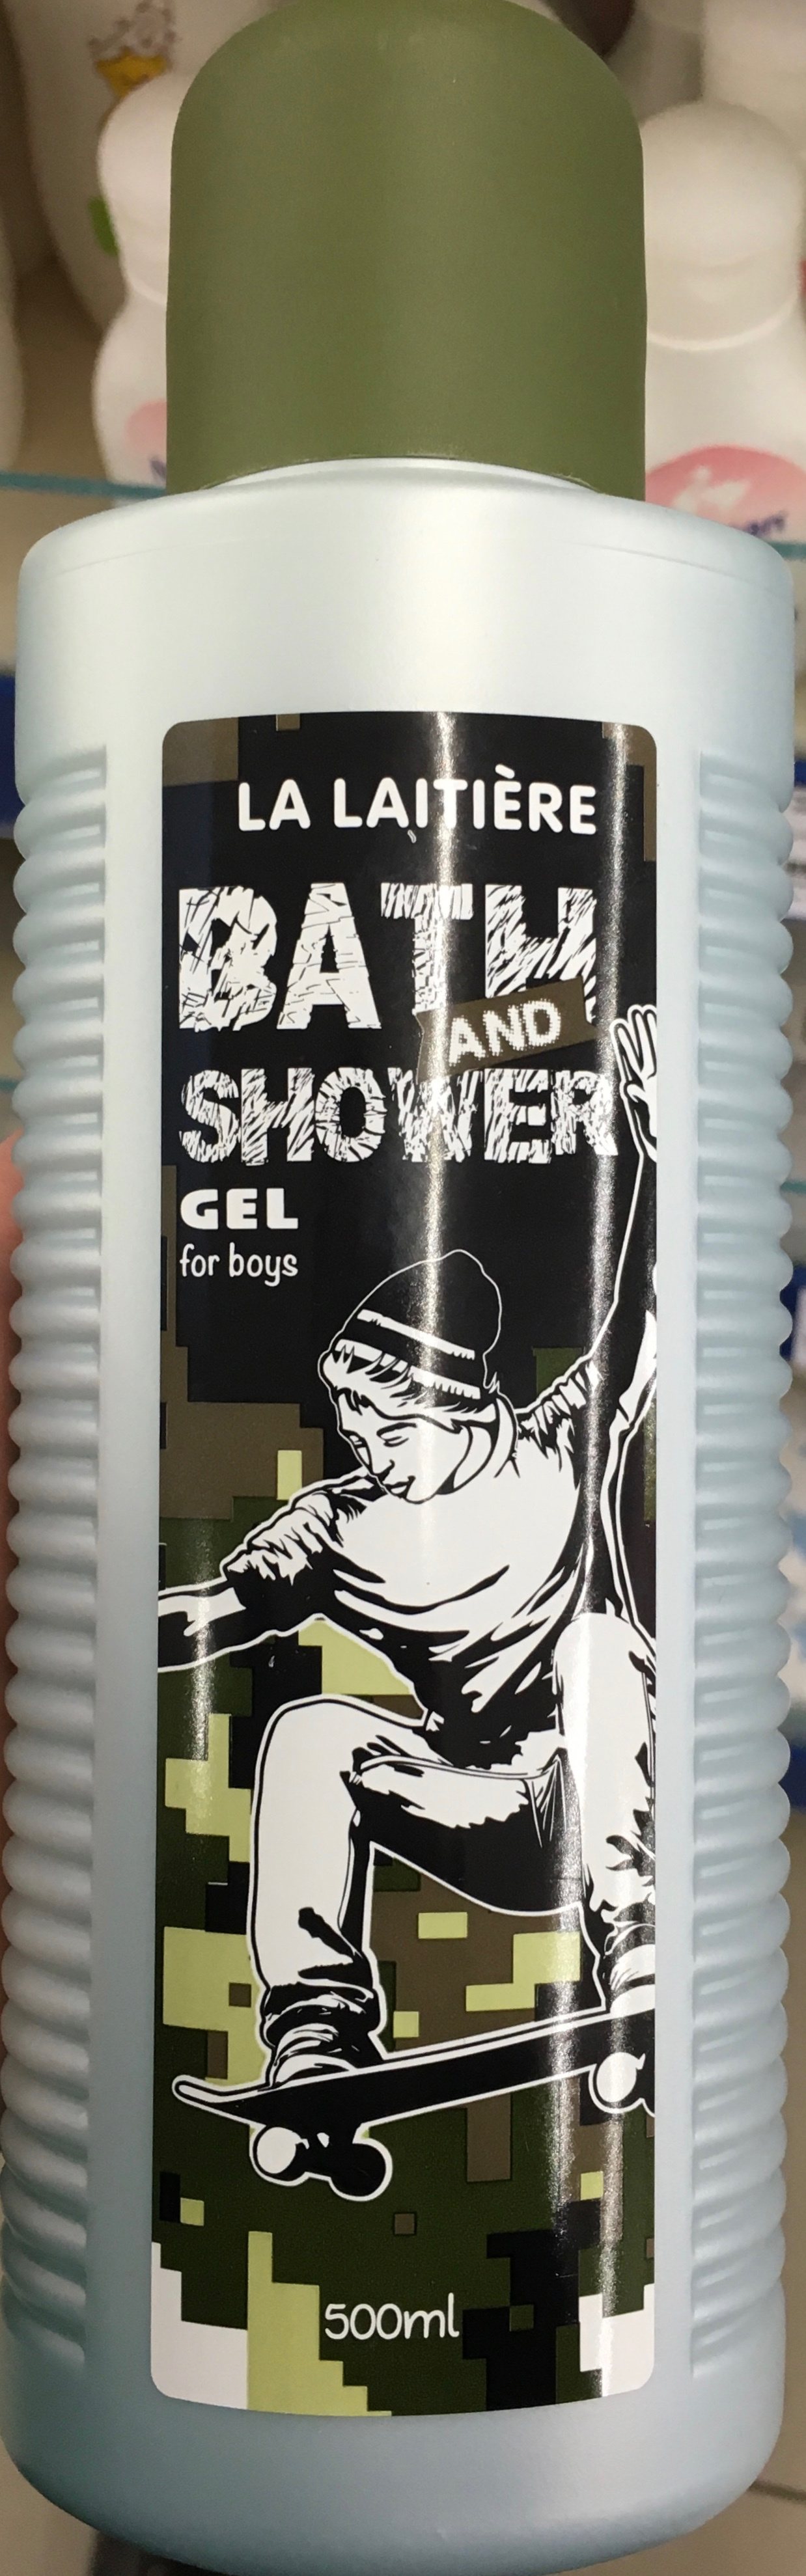 Bath and Shower Gel for boys - Produit - fr